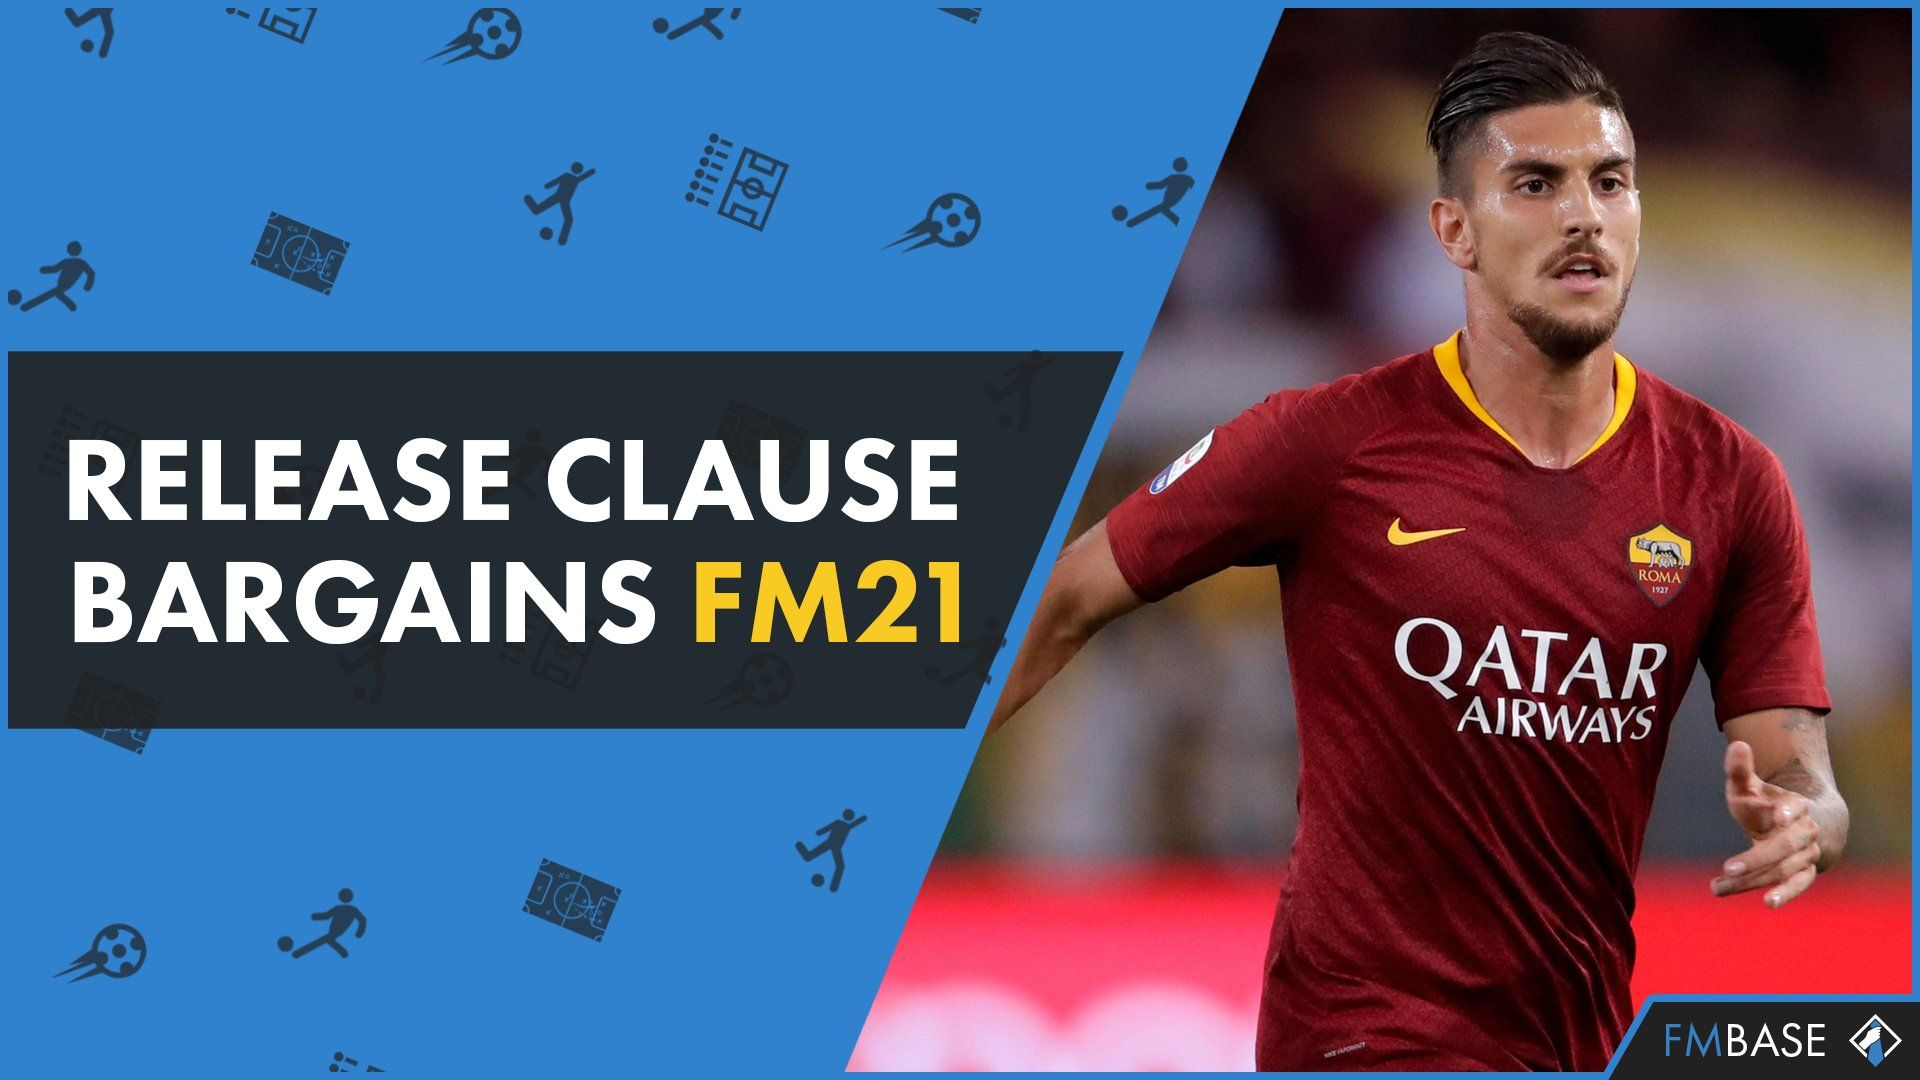 """FM21 Release Clause Bargains"" feature image"